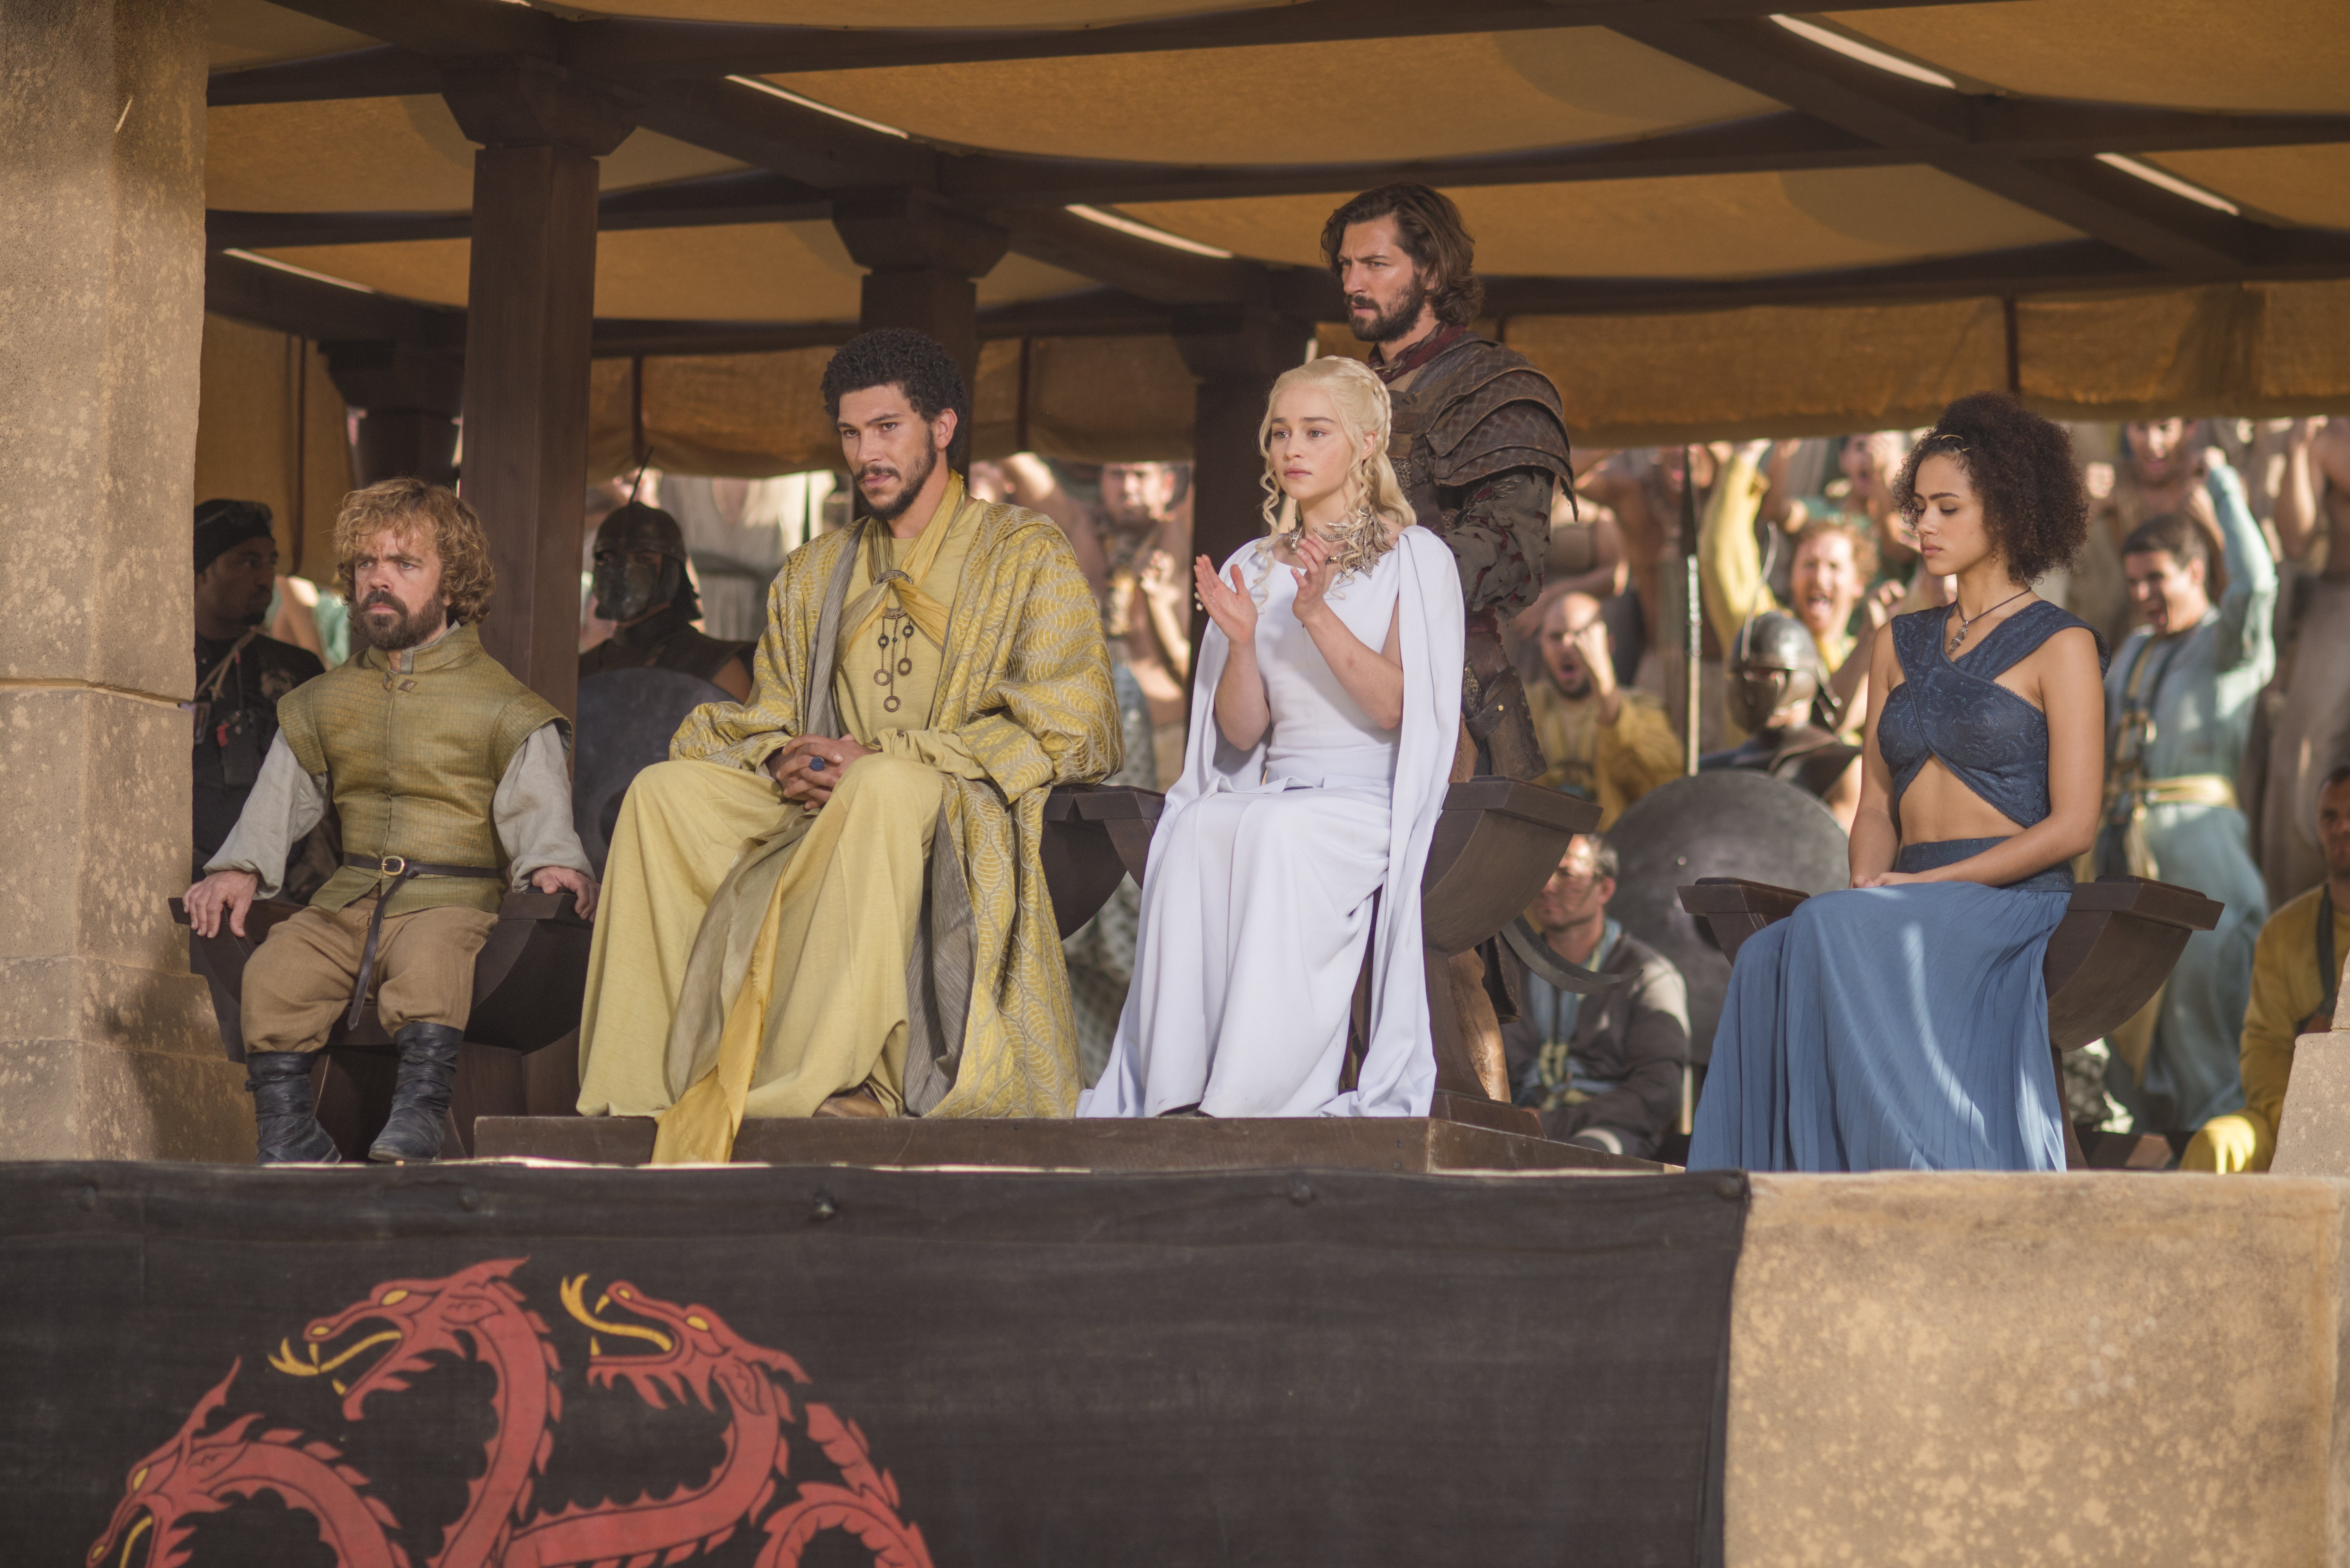 dany with missandei, daario, tyrion and hizdahr